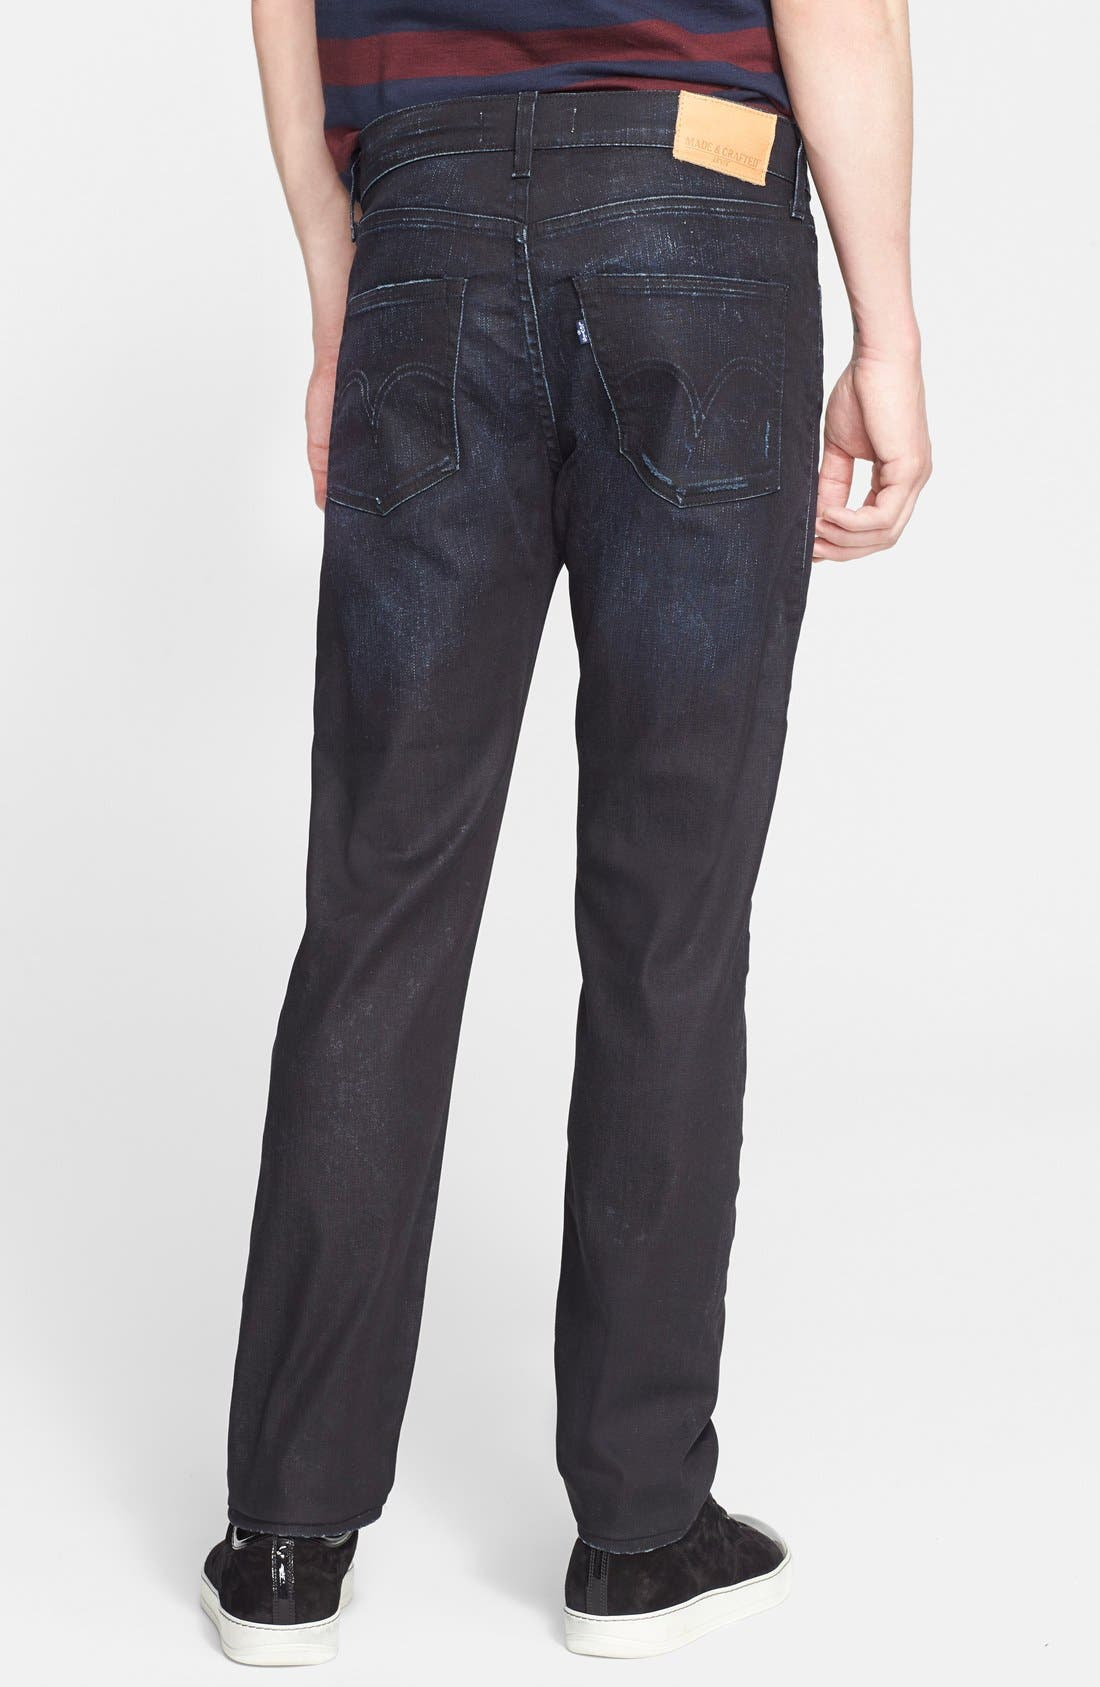 'Death or Glory' Waxed Skinny Fit Jeans,                             Alternate thumbnail 3, color,                             401